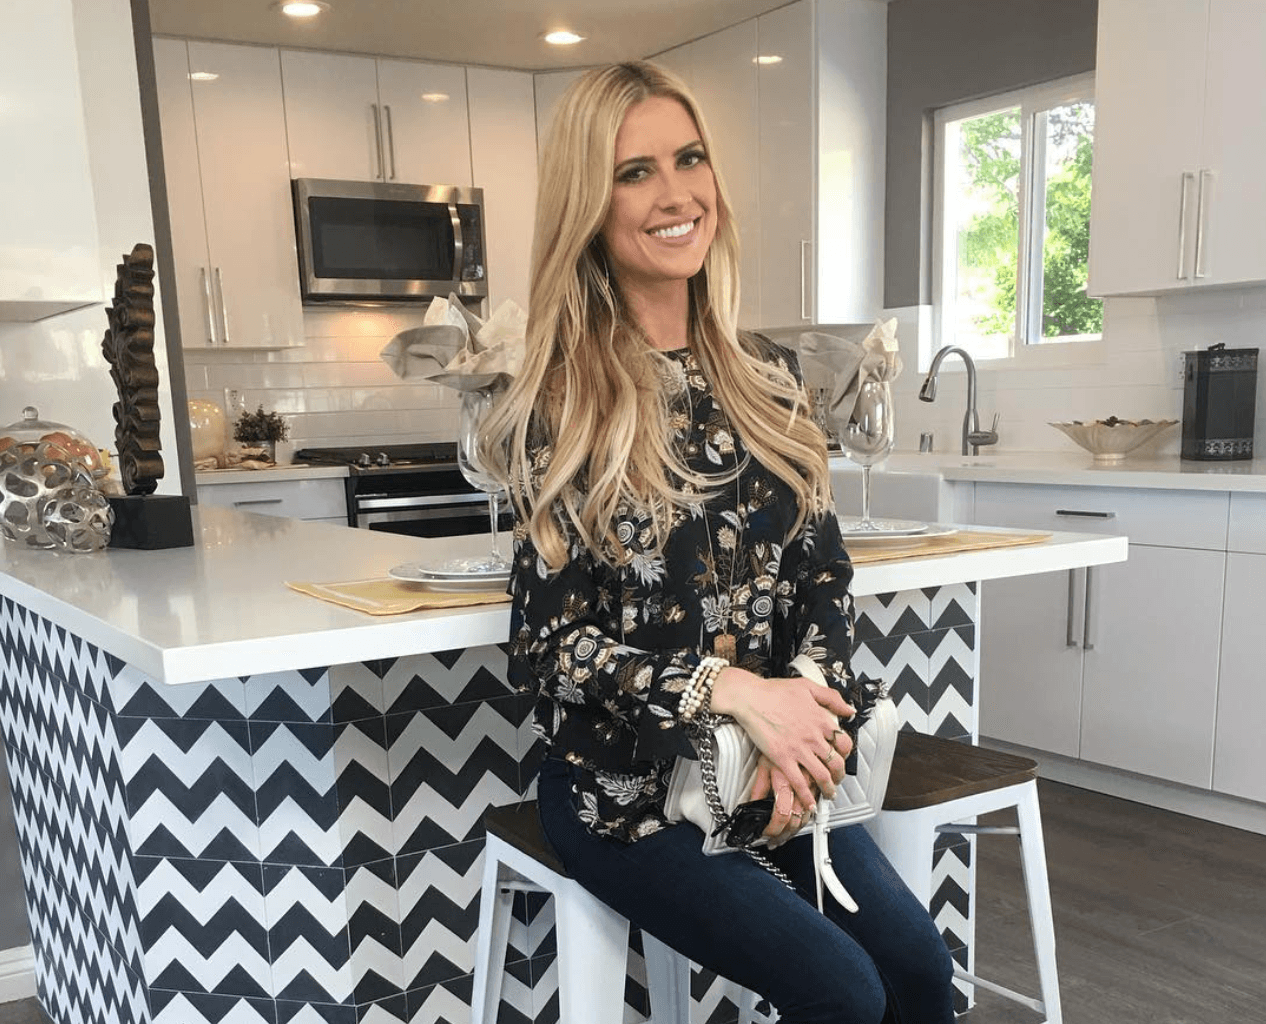 Christina El Moussa in a black and white kitchen